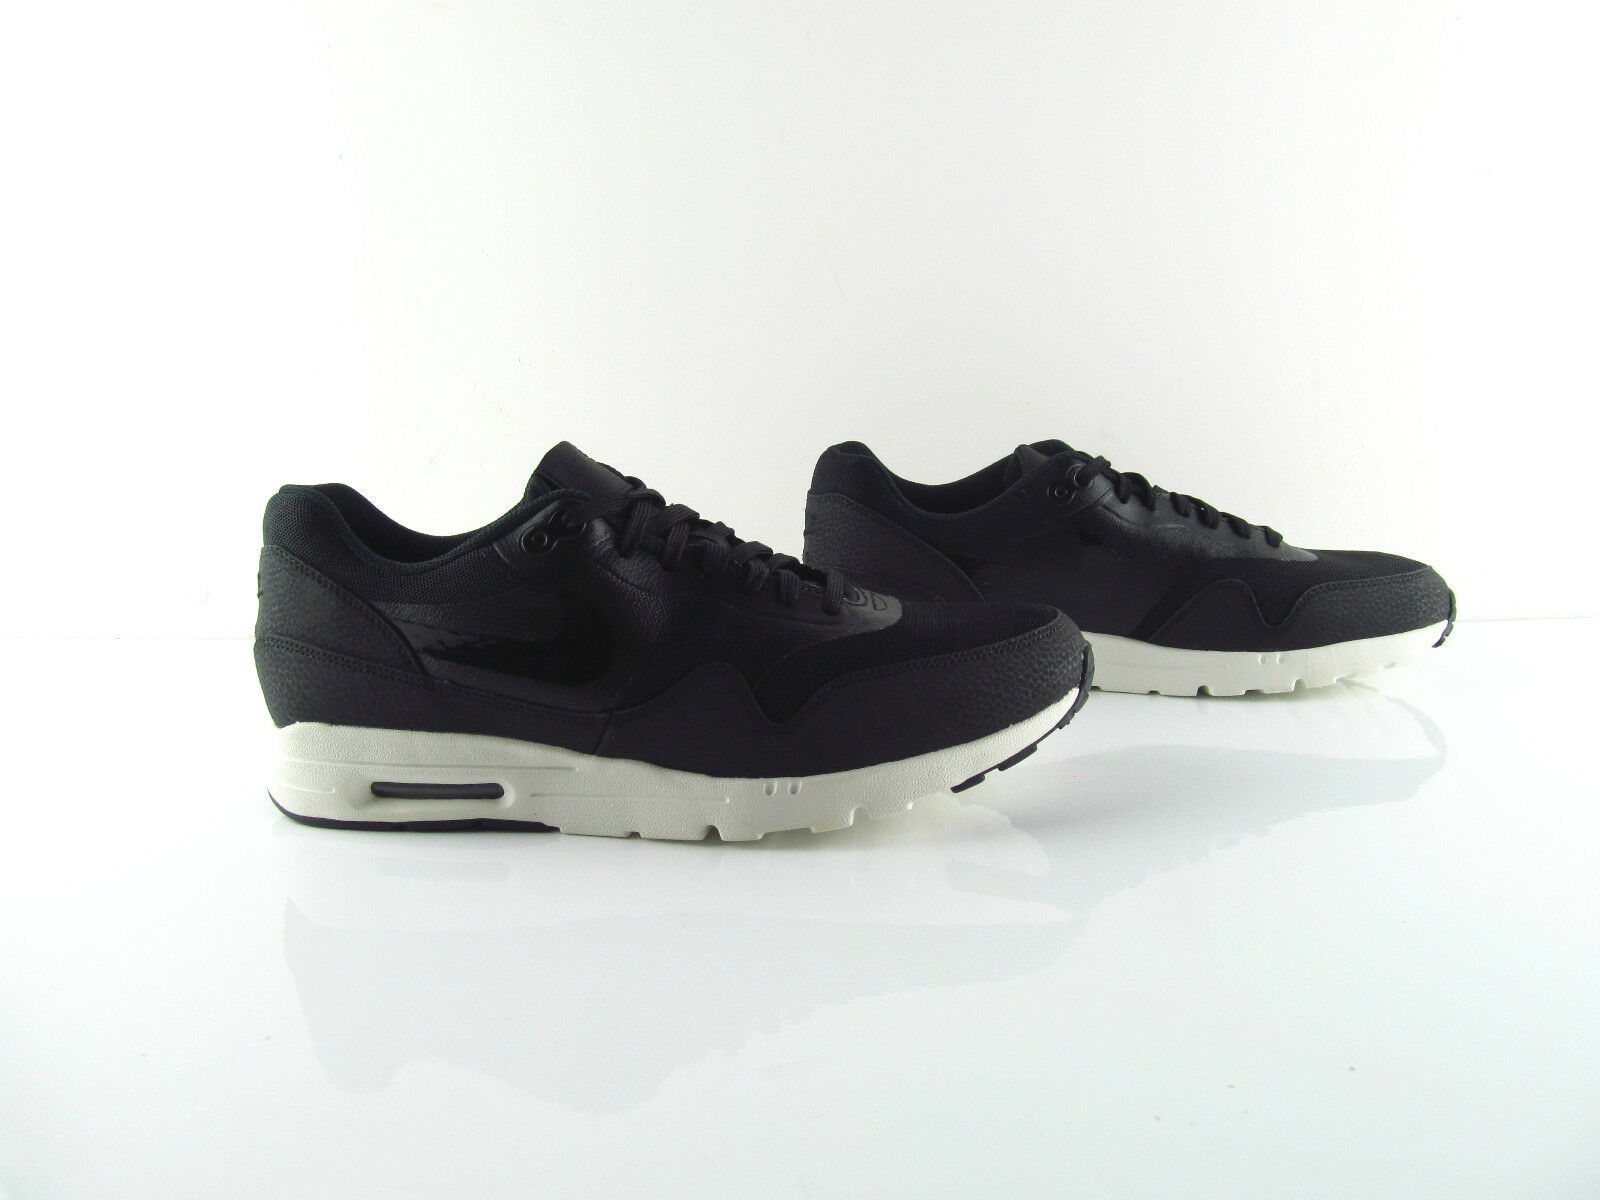 on sale 66572 decdd ... Nike Air Max Infuriate 2 Low 908975-090 Deportiva Deportiva Deportiva  Clásica 90 Bw Zapatos ...